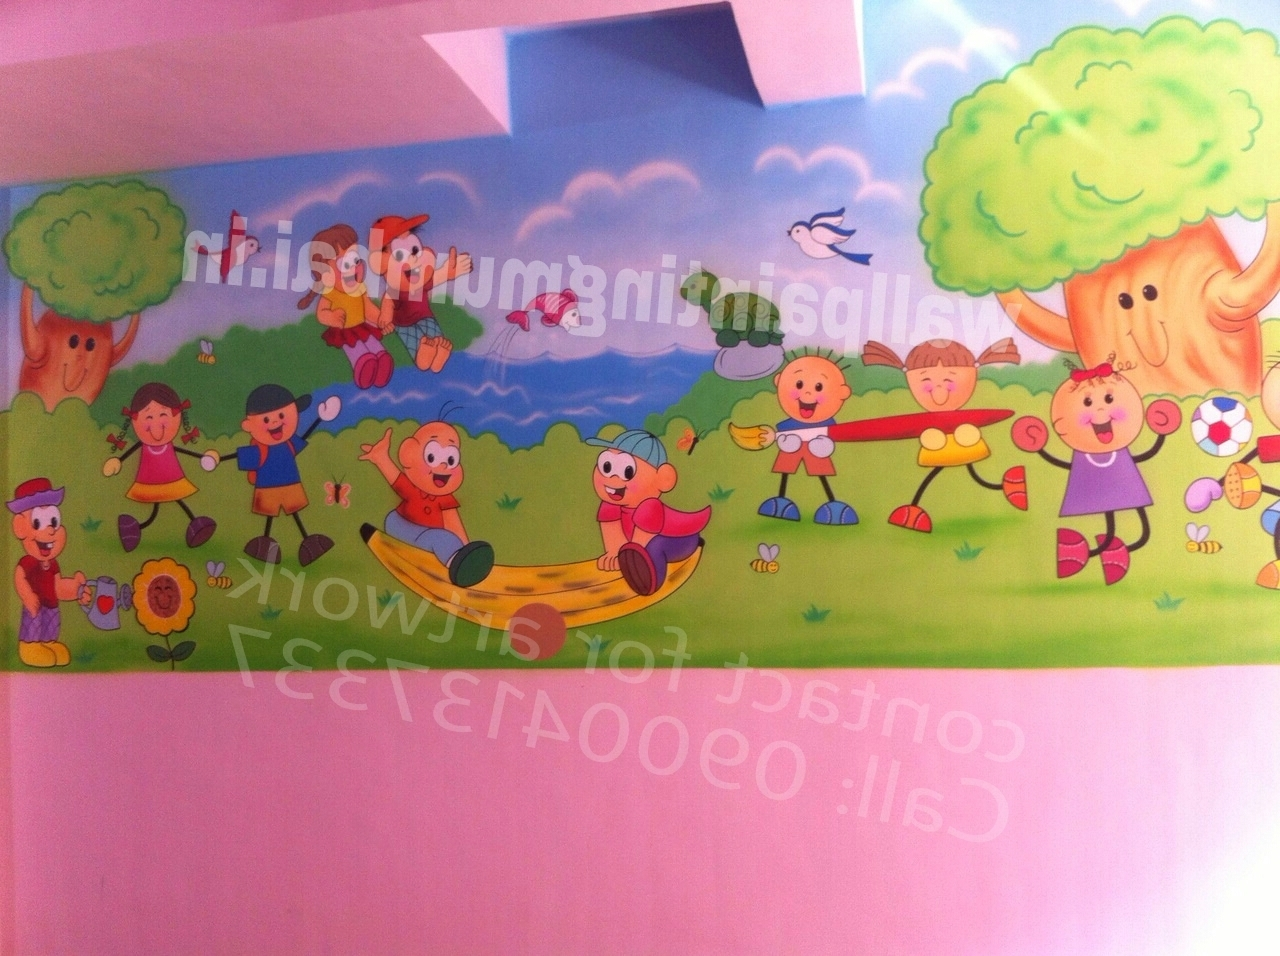 Most Current Preschool Wall Art Intended For Play School Wall Painting: Playschool Or Preschool Classroom Wall (View 10 of 15)